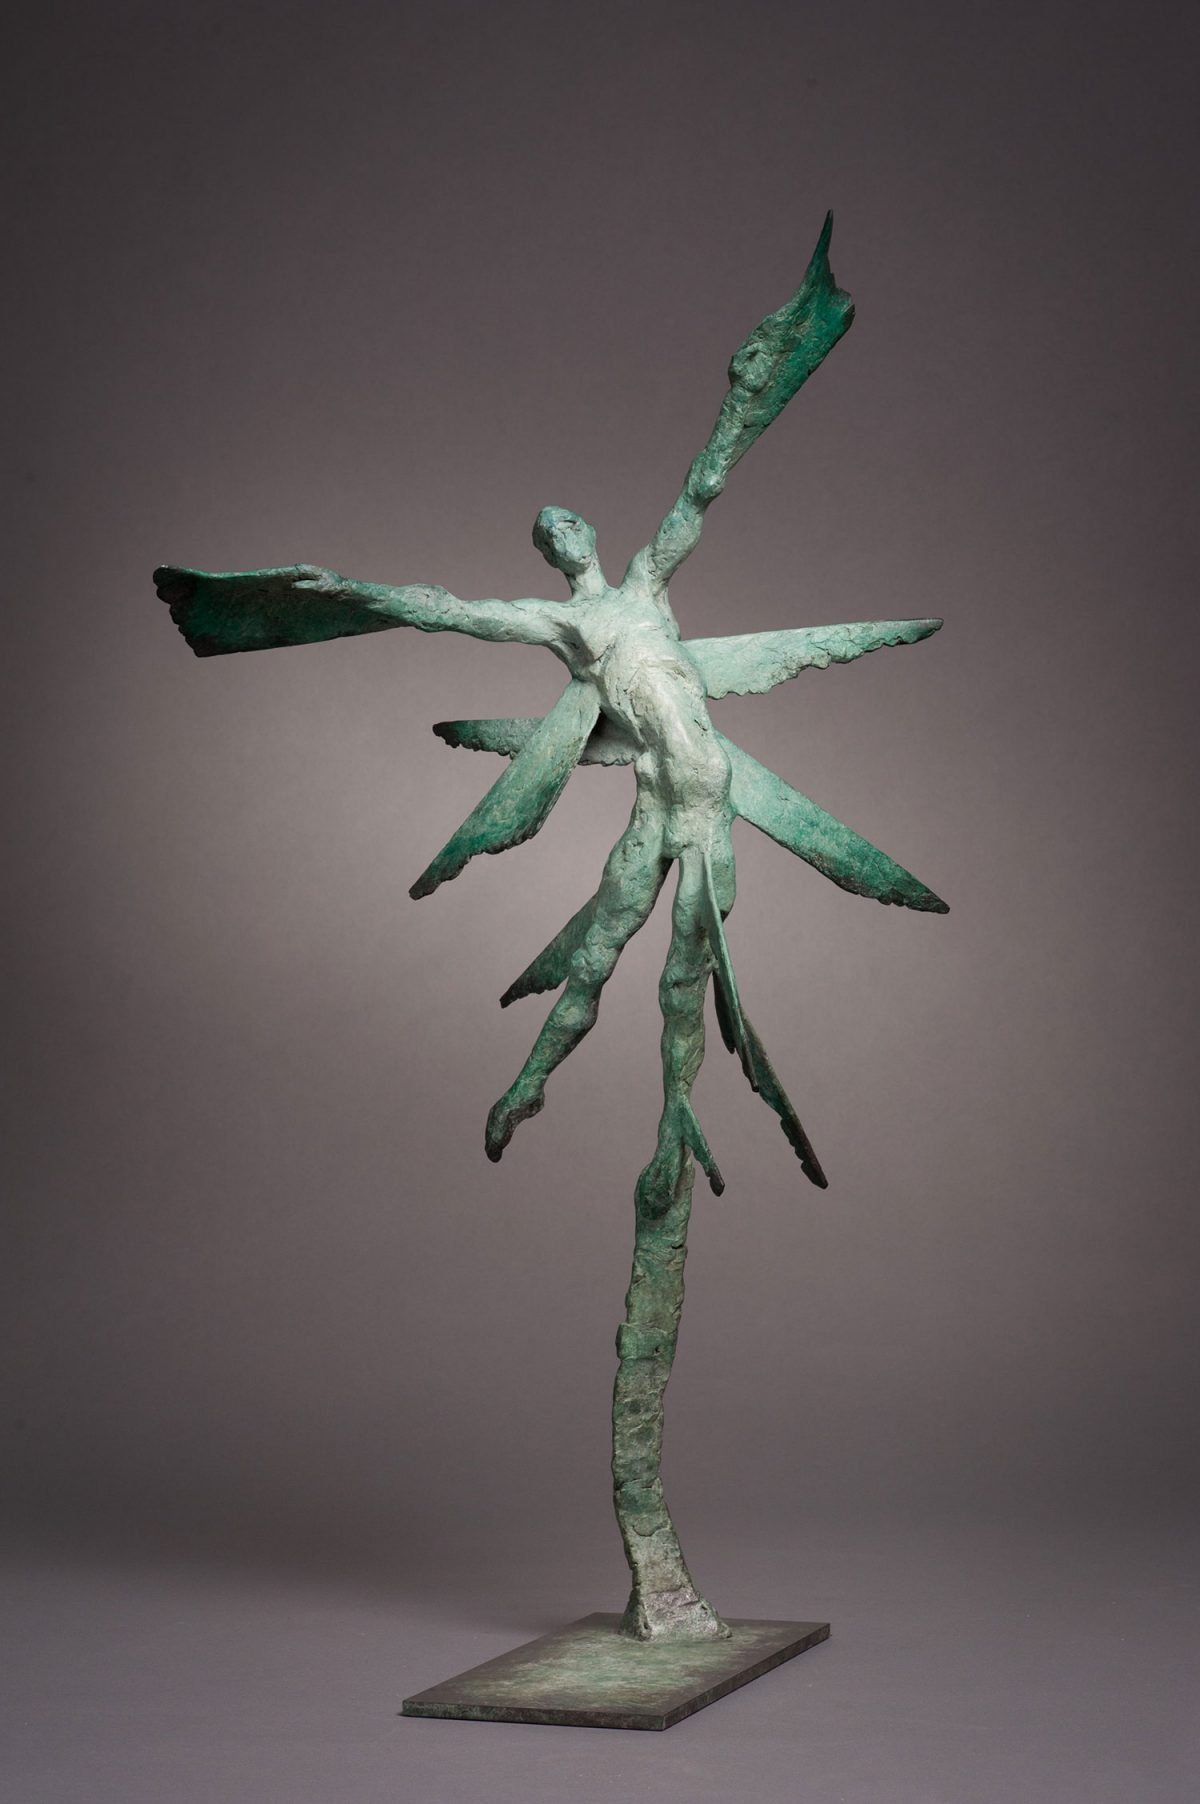 Vol d'Etincelle III. Spark III. Bronze abstract sculpture in green.